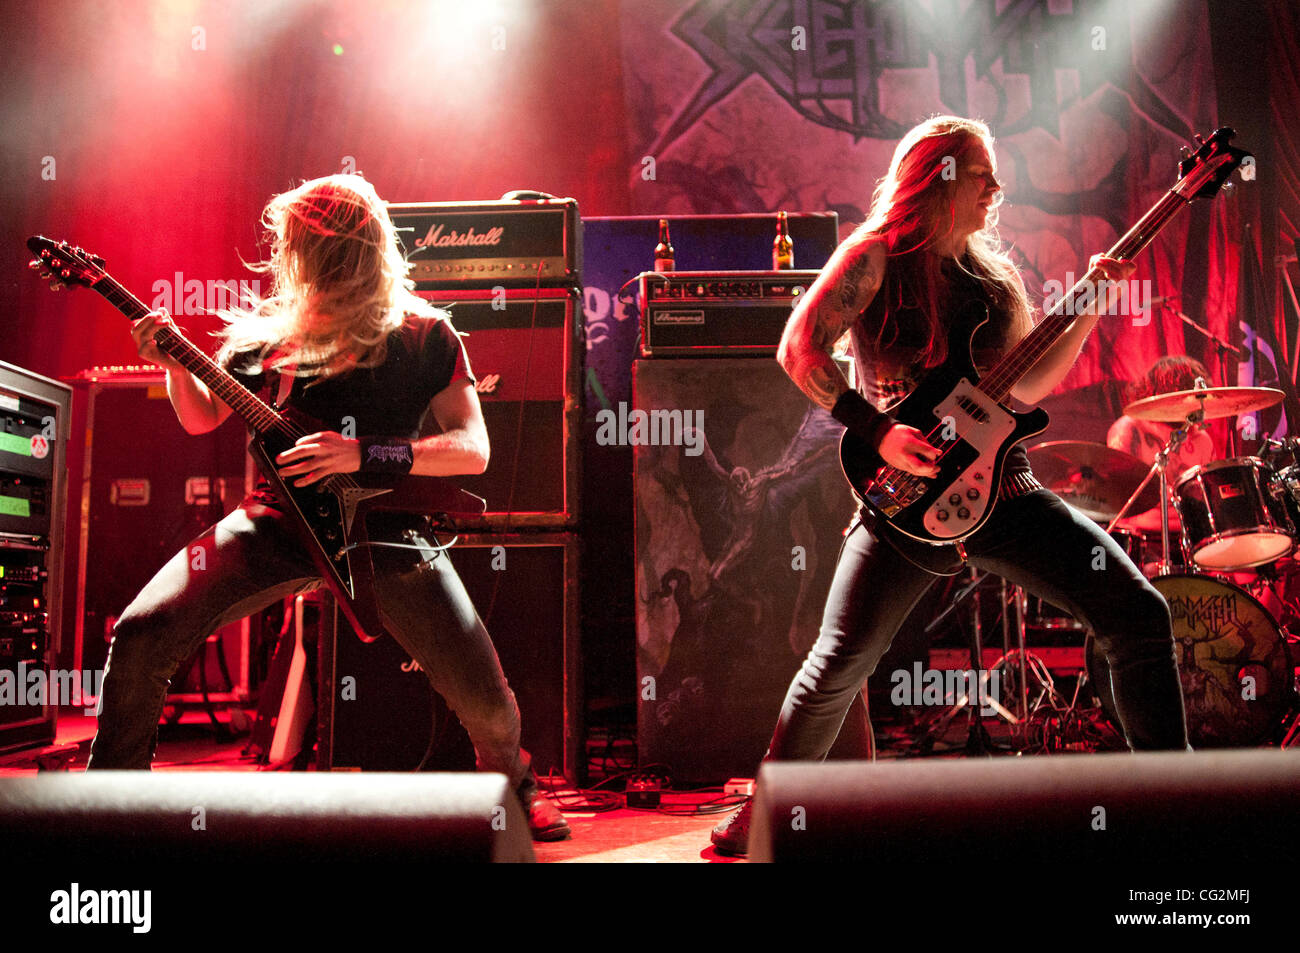 October 4, 2011 - Chicago, IL, USA - Scott Hedrick (left) and Evan Linger (right) of the Ohio thrash metal band - Stock Image